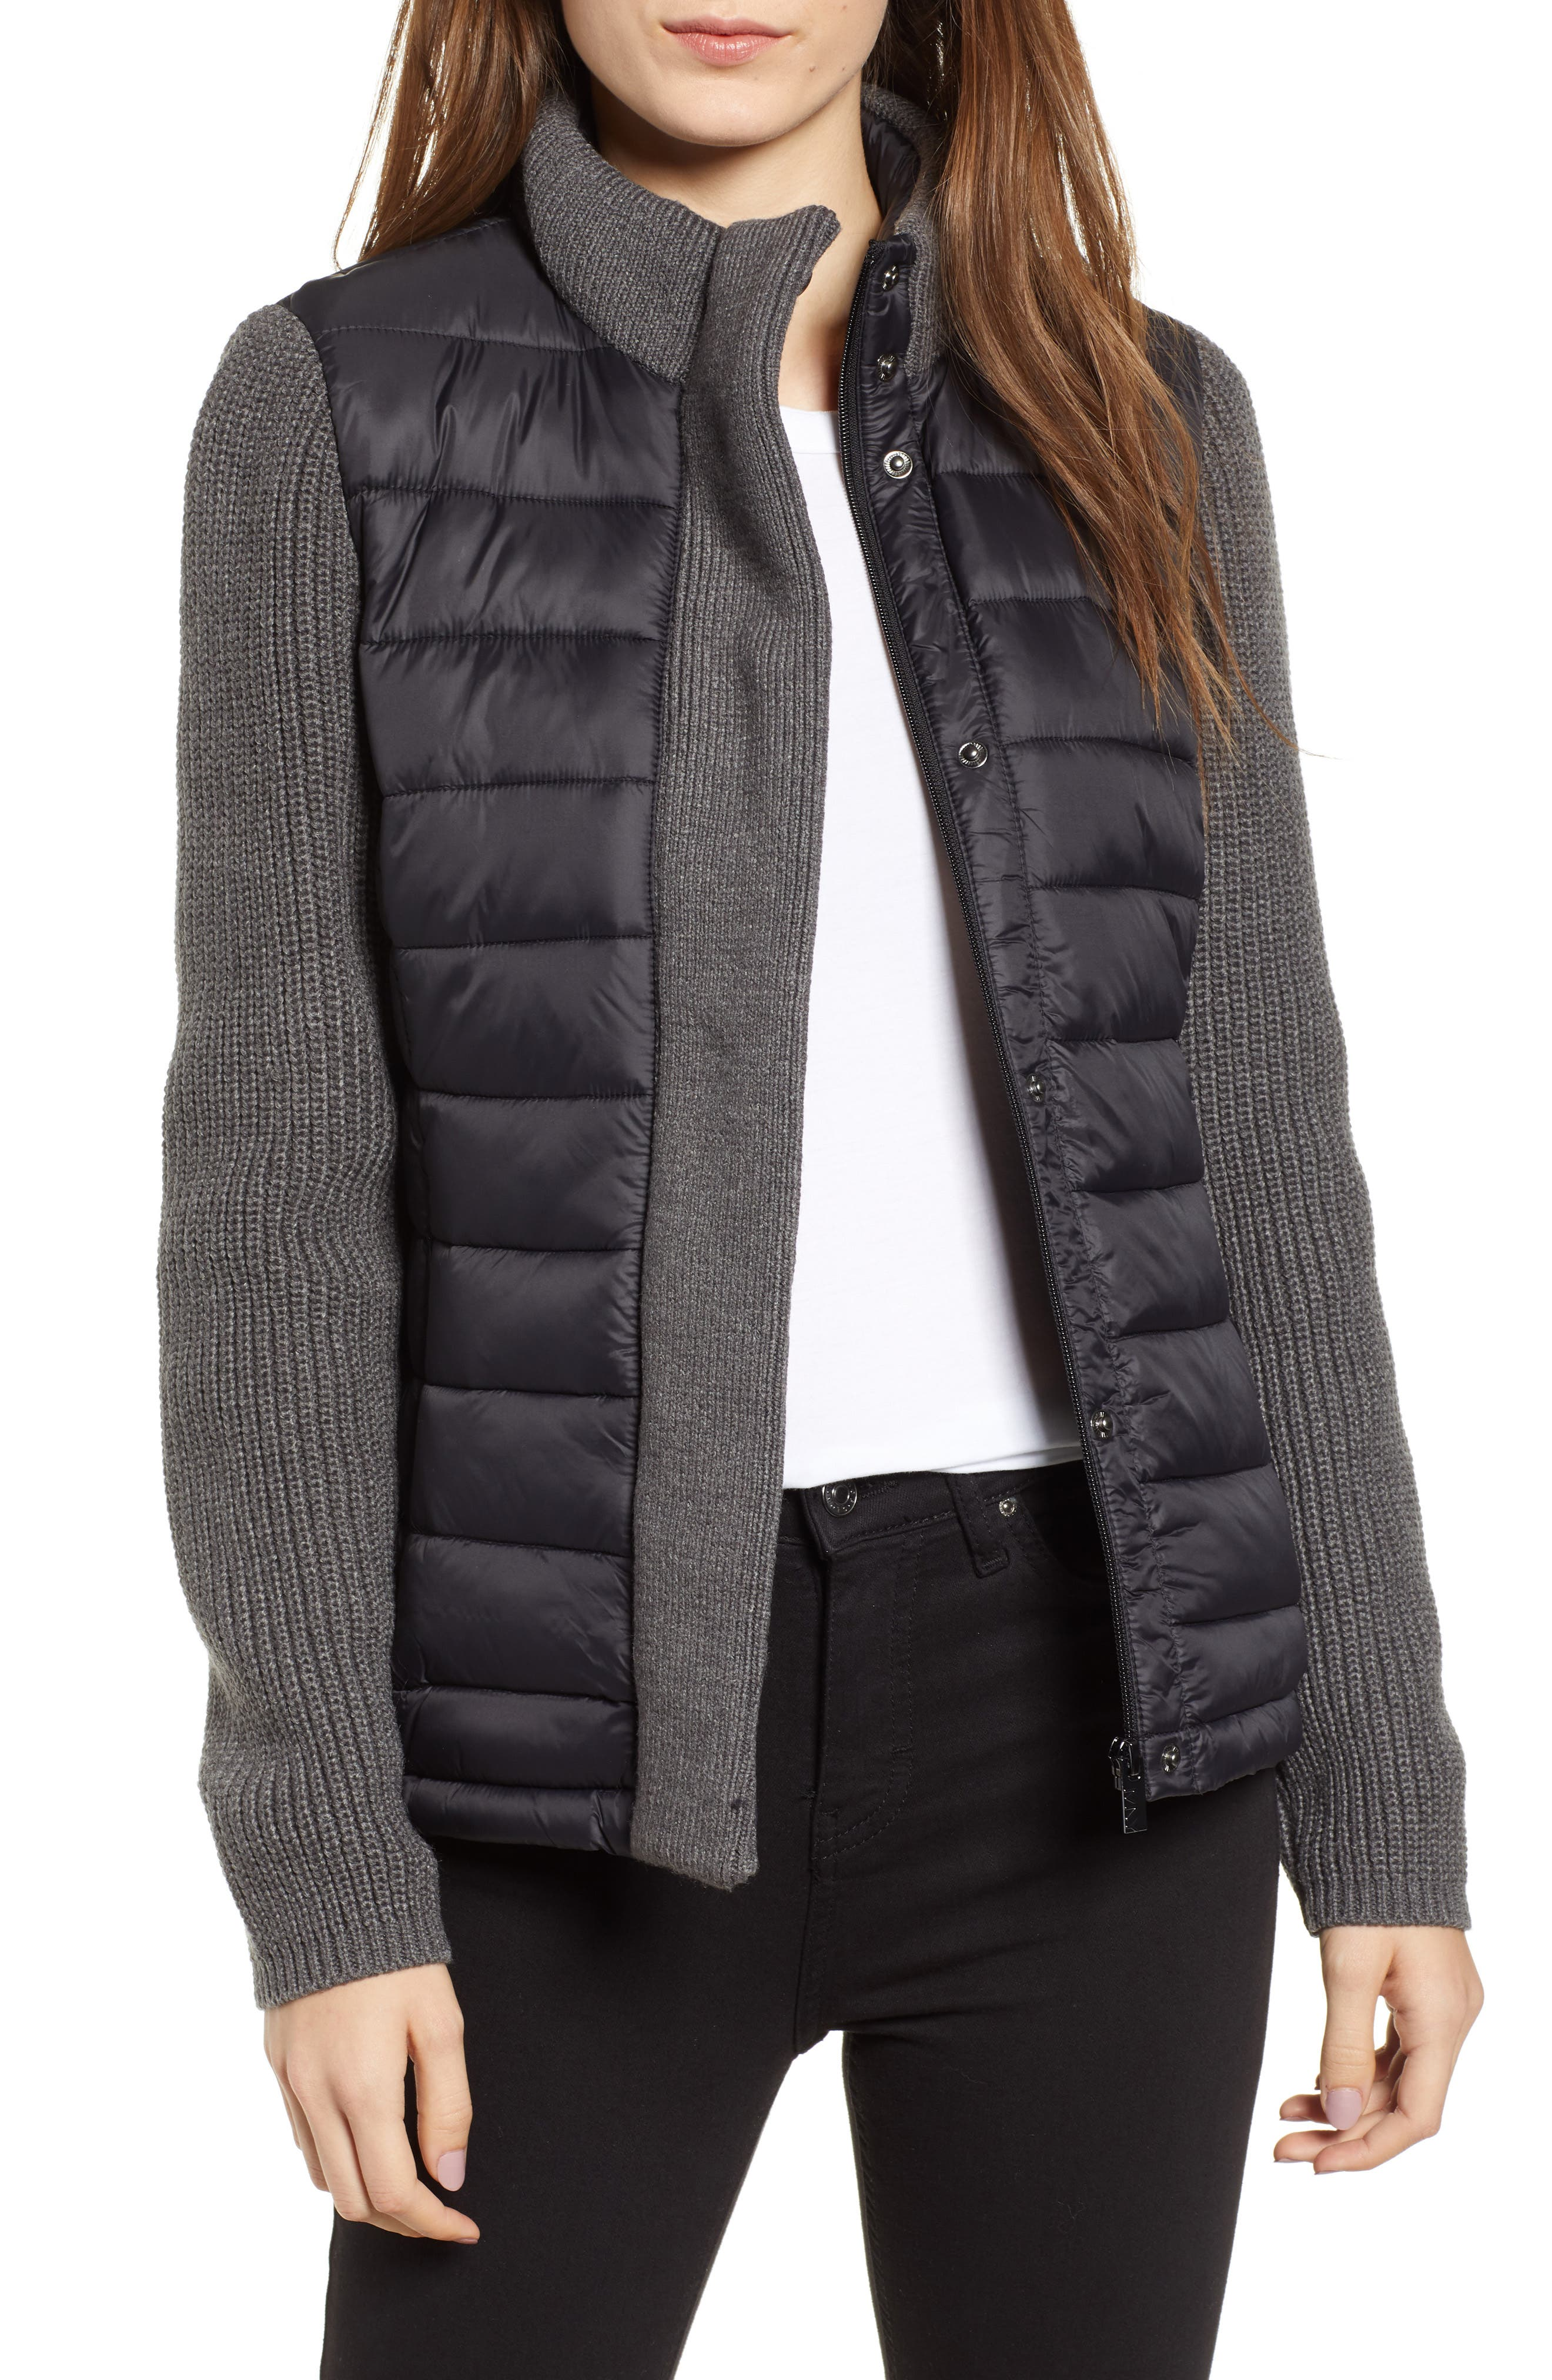 MARC NEW YORK Mark New York Packable Knit Trim Puffer Jacket, Main, color, BLACK/ GREY